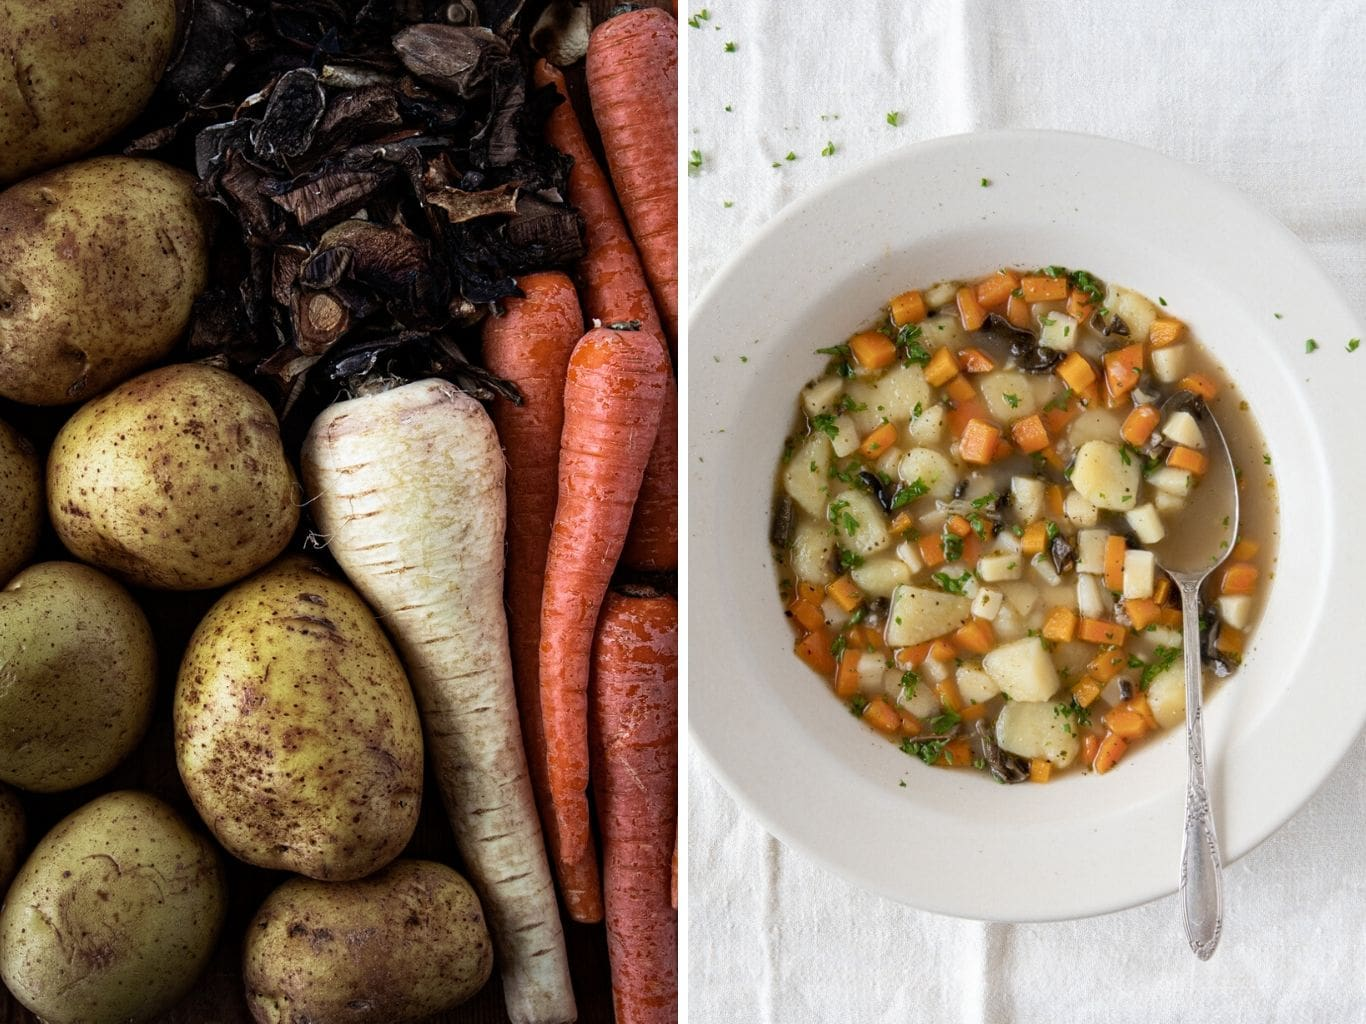 Photo dyptich. Left photo showing ingredients for chunky Czech Potato Soup (Bramboračka) including potatoes, dried porcini, carrots and parsnip. On the right is a plate with the finished soup.